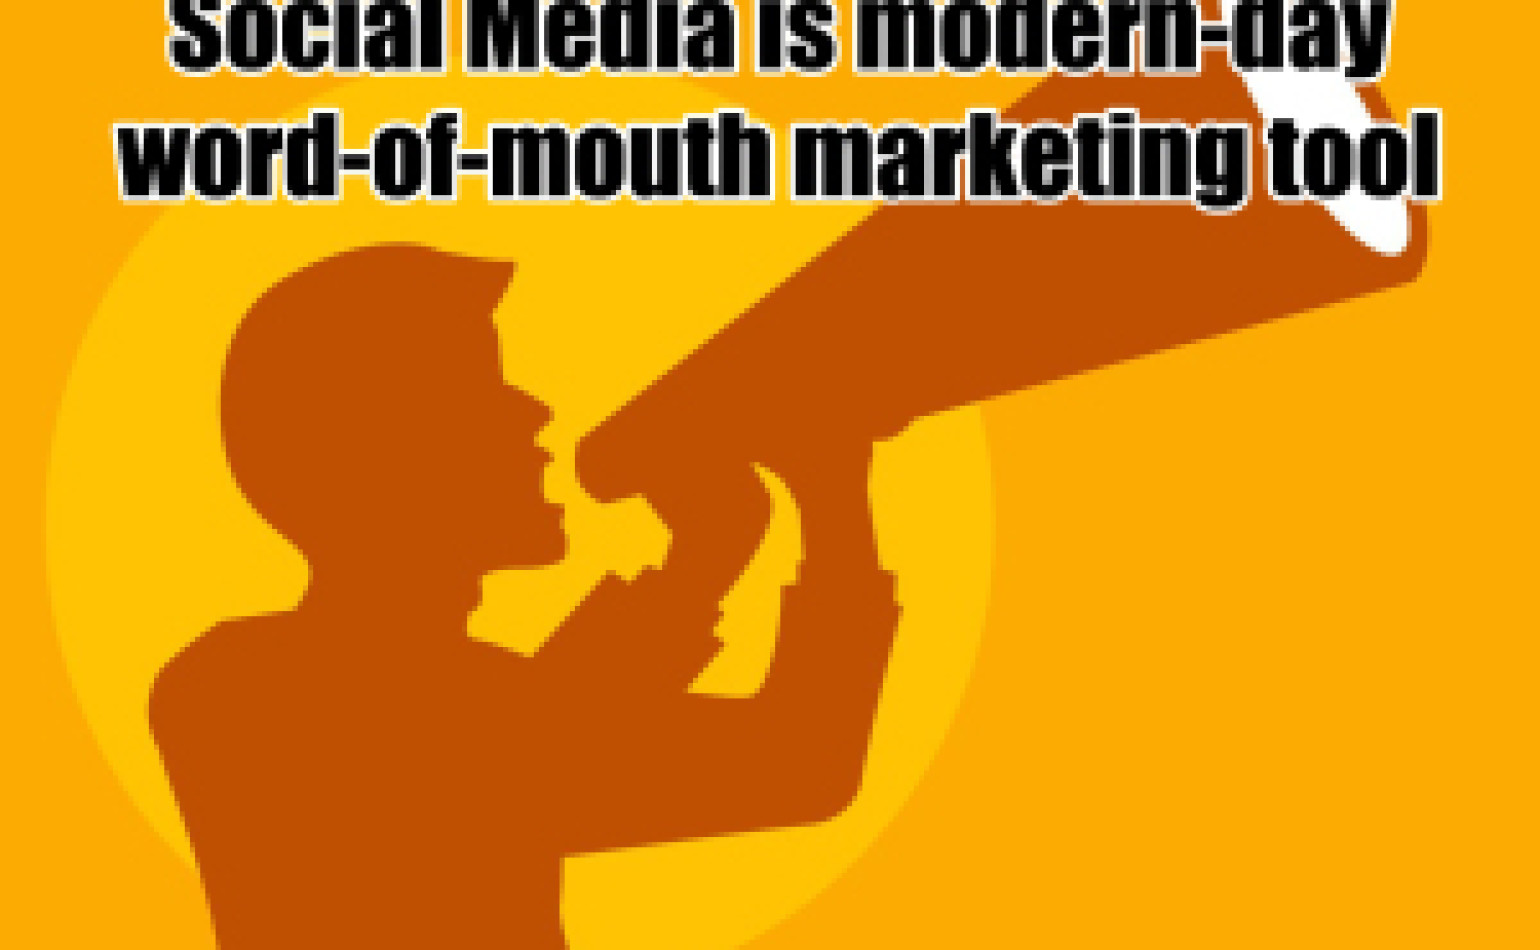 word of mouth marketing Word-of-mouth is immensely powerful in fact, it's the best marketing tool you have we believe that every marketer should know that, so we created an infographic to explain why backed with facts, statistics and zombies.